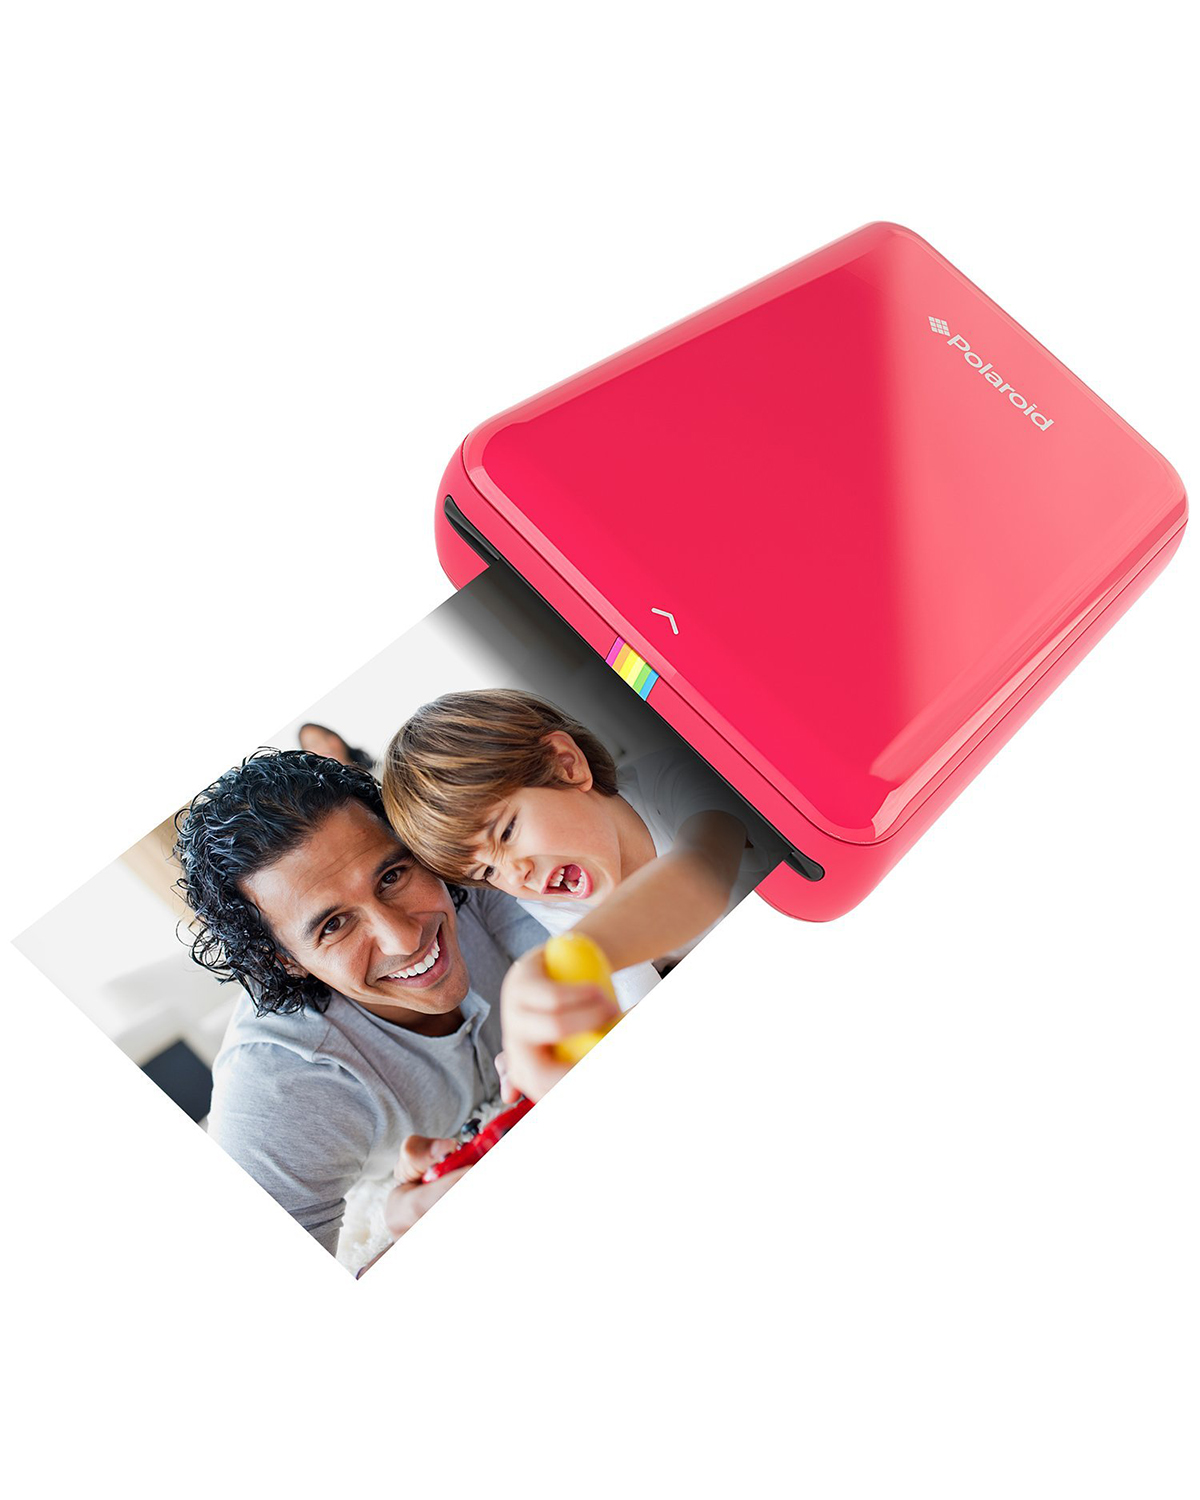 Best Tech Gifts for Christmas and Birthdays: polaroid zip mobile printer